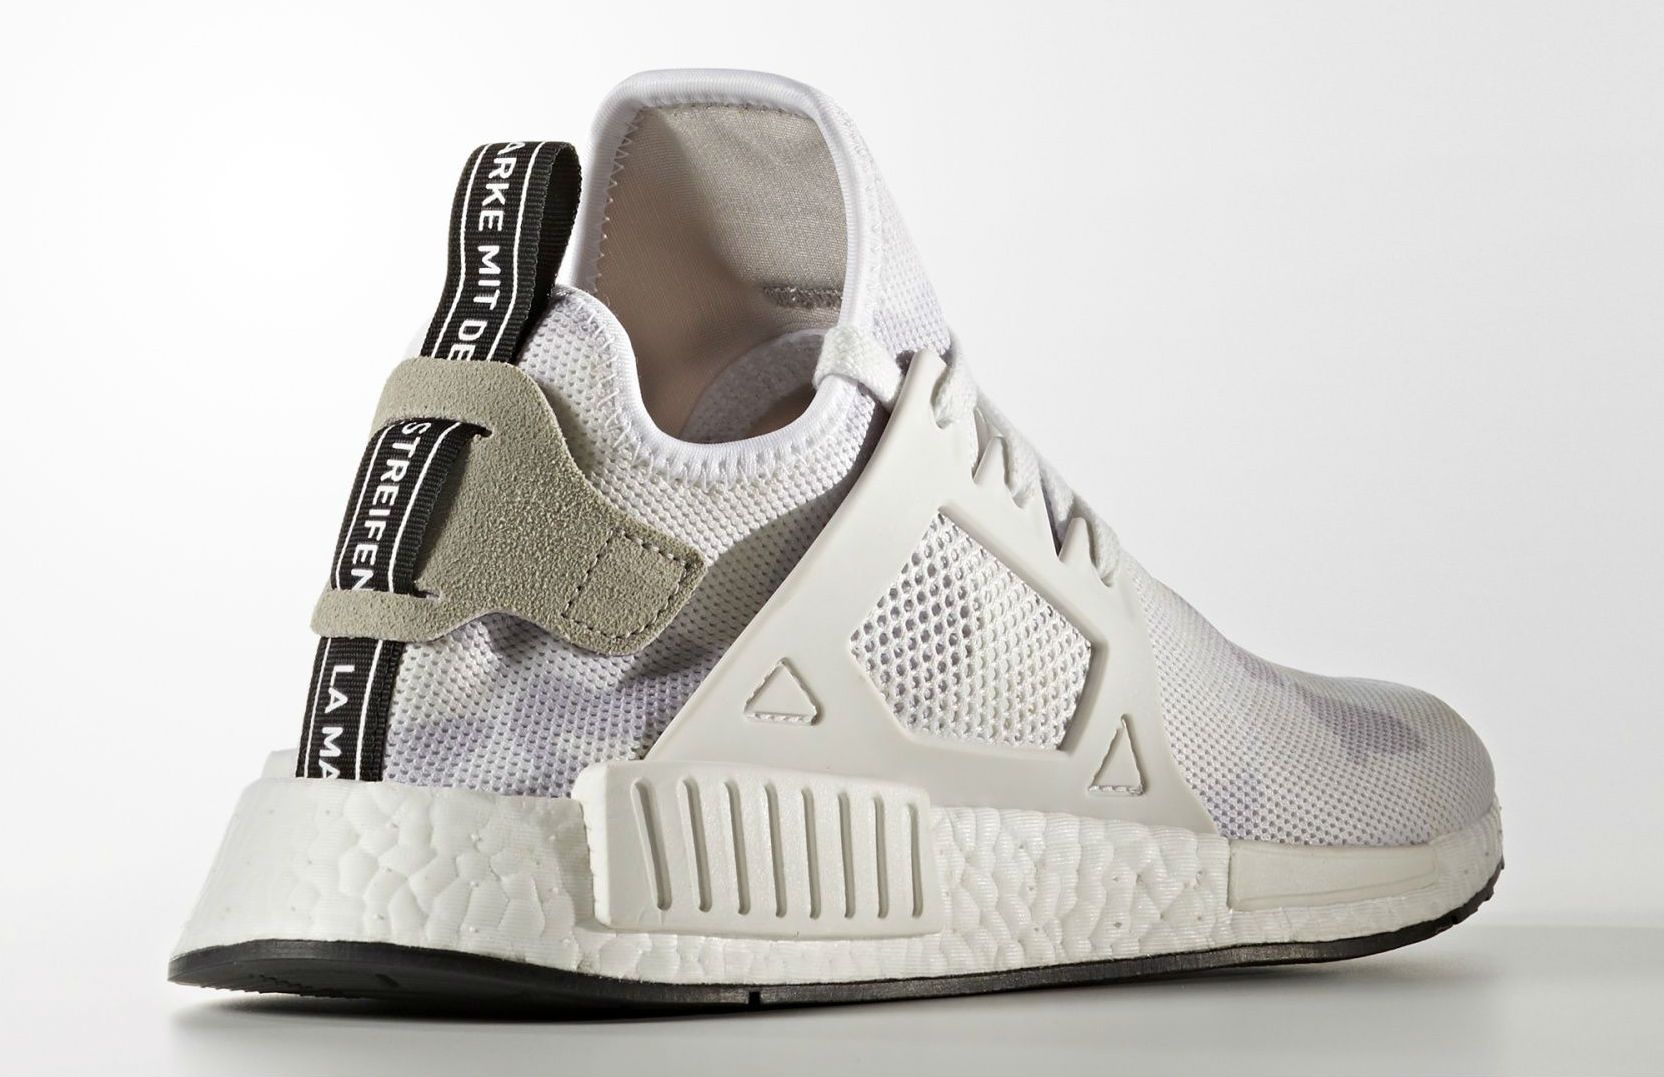 finest selection f3892 b66c3 adidas NMD XR1 White Camo Heel BA7233 | Sneakers in 2019 ...